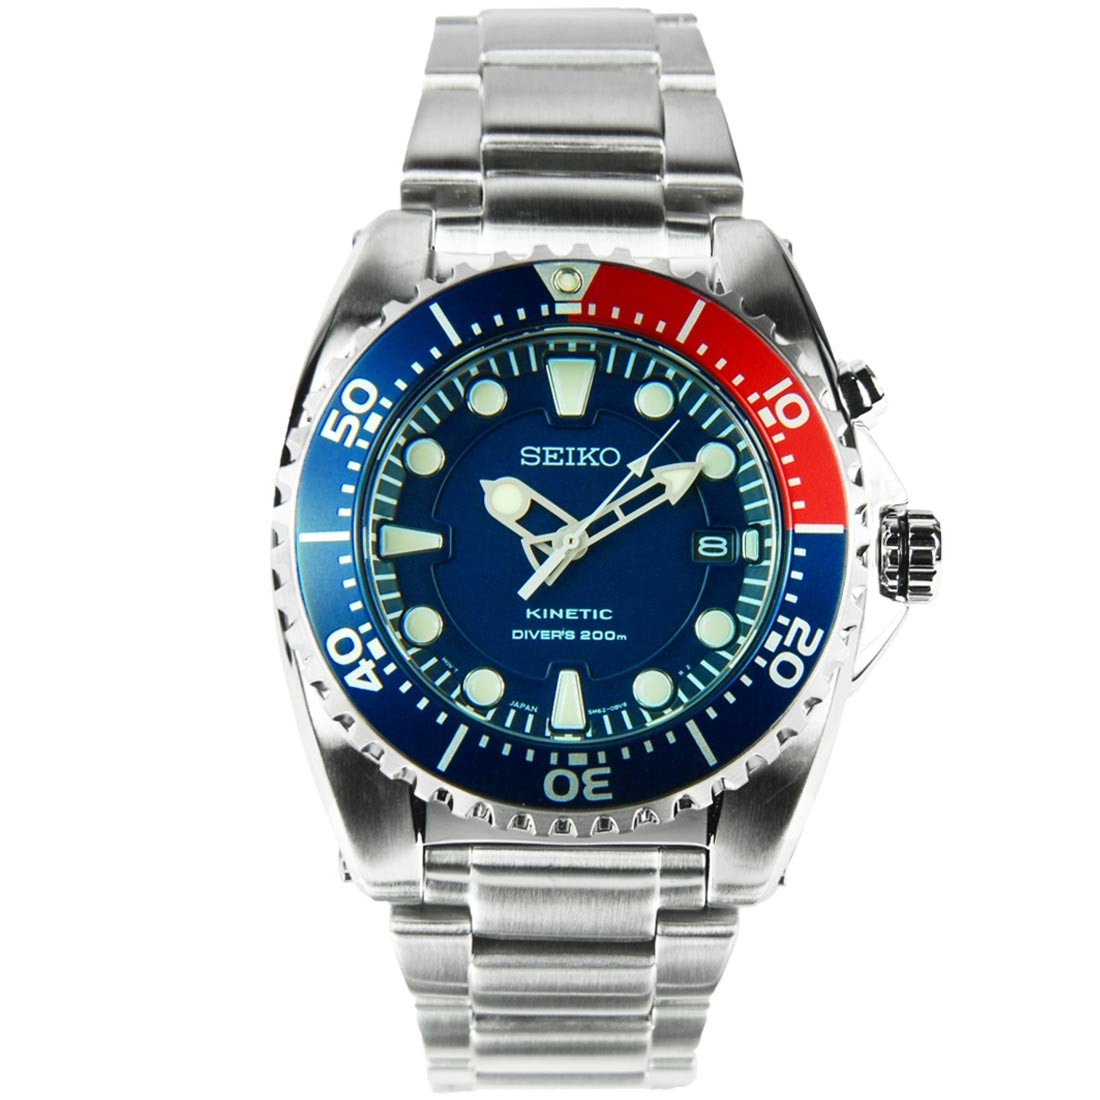 Top 10 seiko men 39 s kinetic watches the watch blog for Seiko kinetic watches